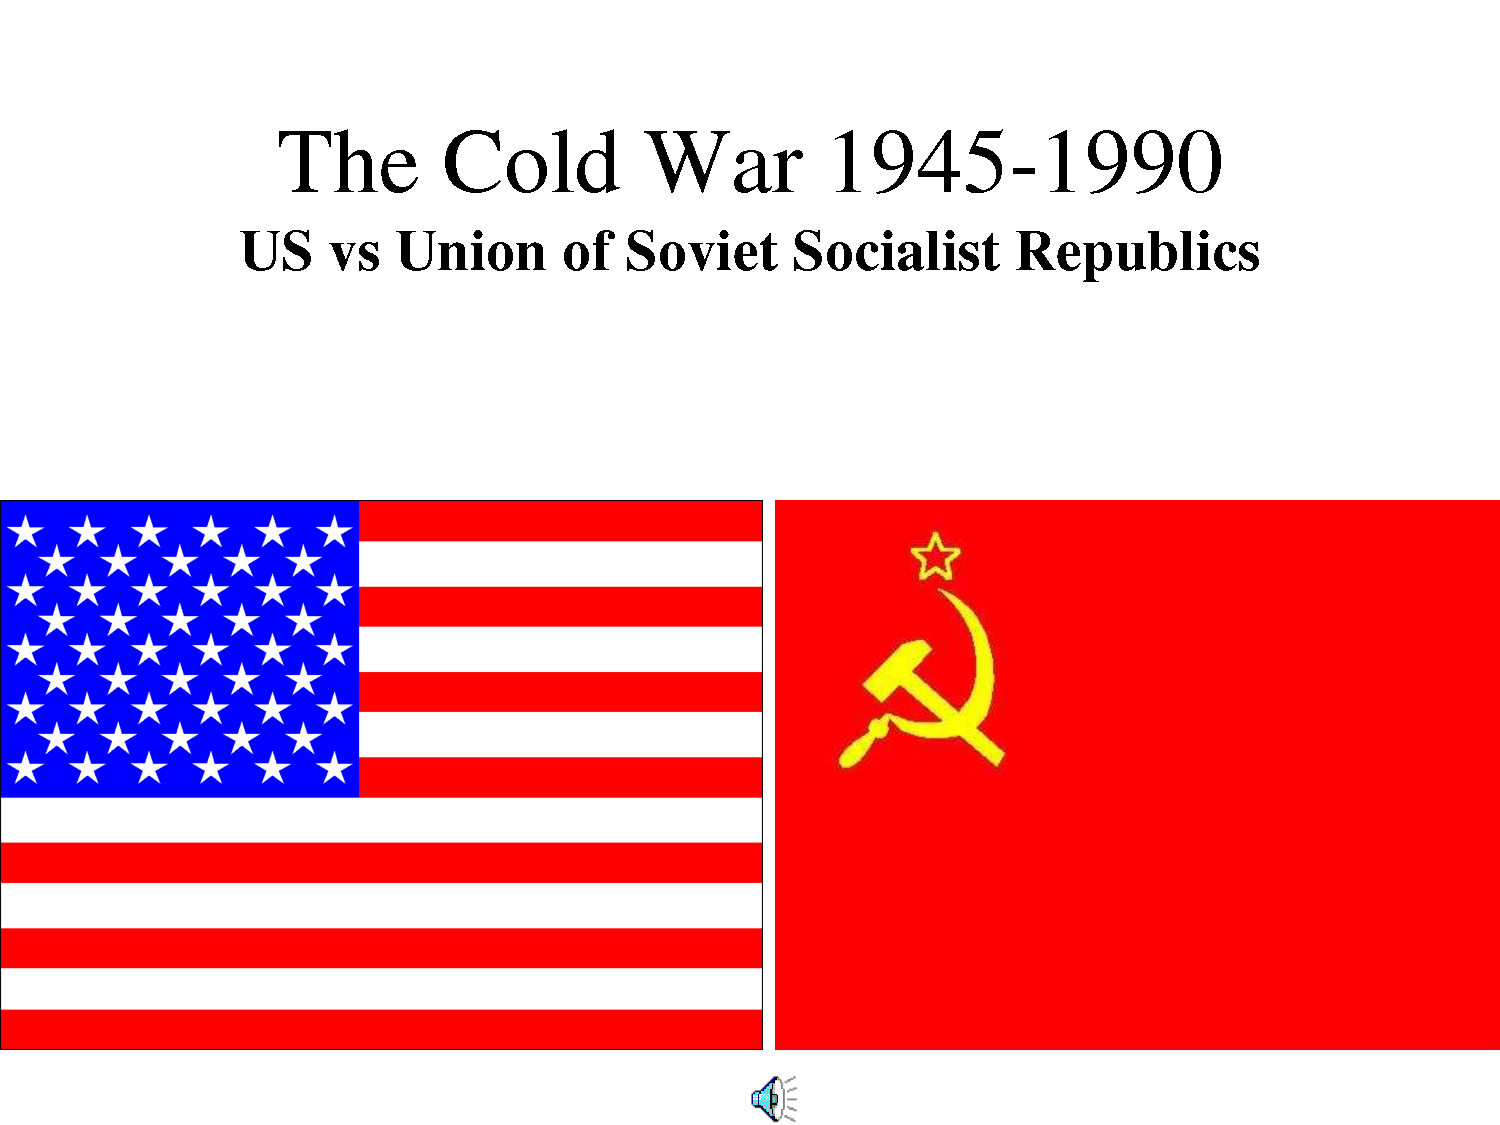 the relationship between the us and ussr during the cold war The u-2 spy plane incident raised tensions between the us and the soviets during the cold war (1945-91), the largely political clash between the two superpowers and their allies that emerged.